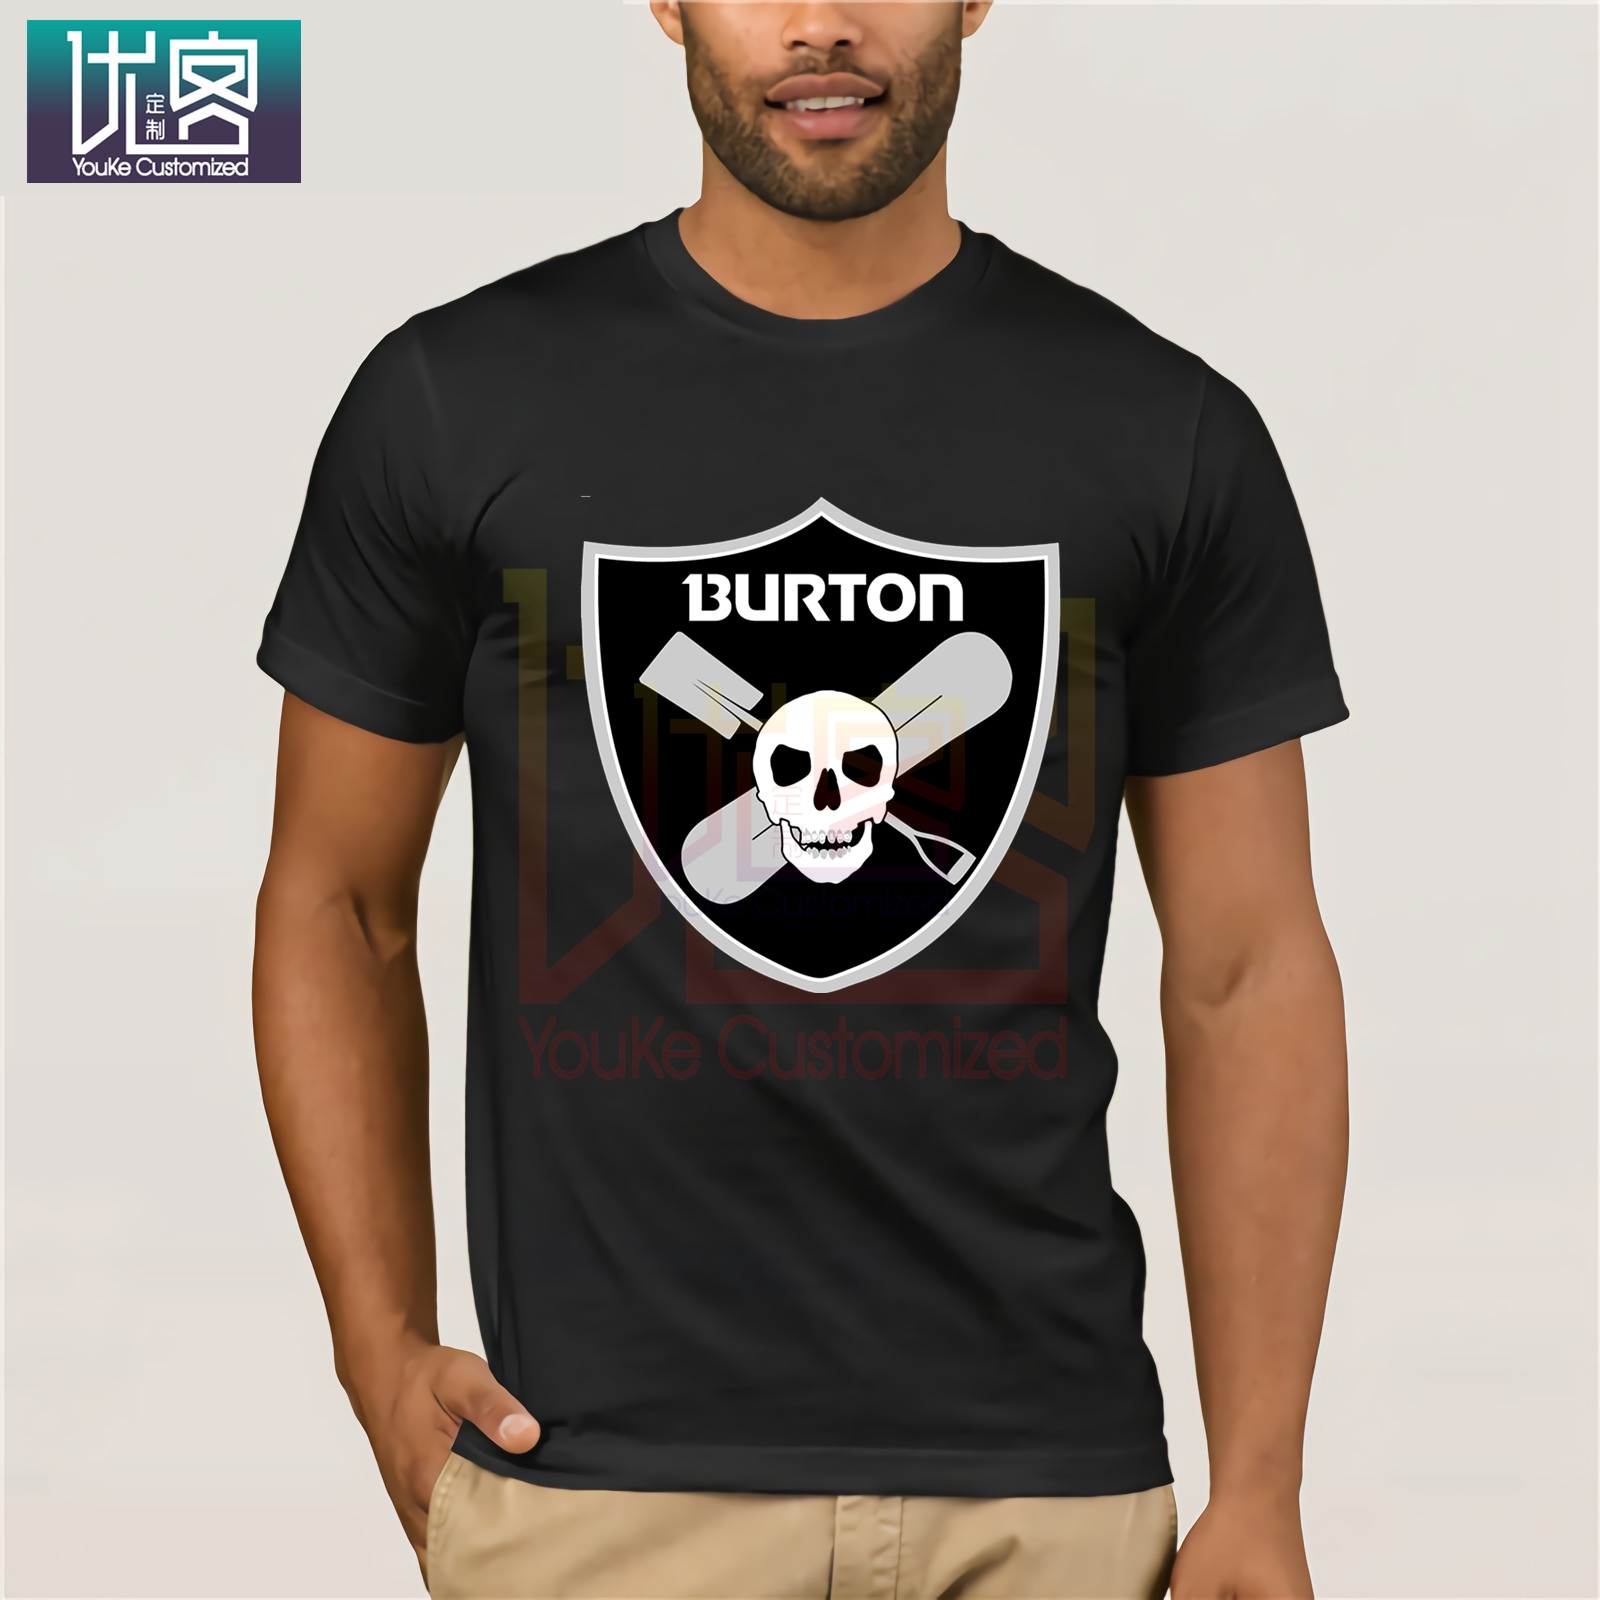 Burton Arrow Logo Snowboards T Shirt Cartoon Tee Shirt Homme Top Tees Men Cool 2020 Fashion Funny Tees Cotton Tops T Shirt